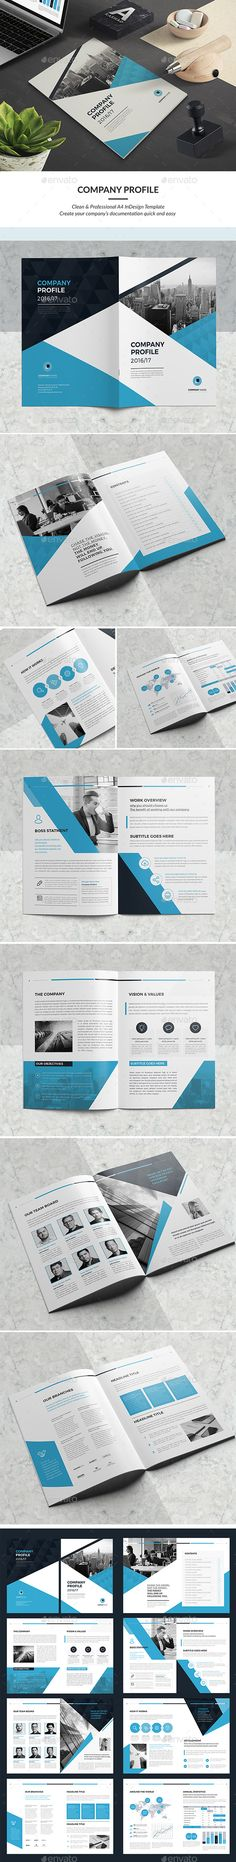 Company Profile Template InDesign INDD Company Profile Design - it company profile template